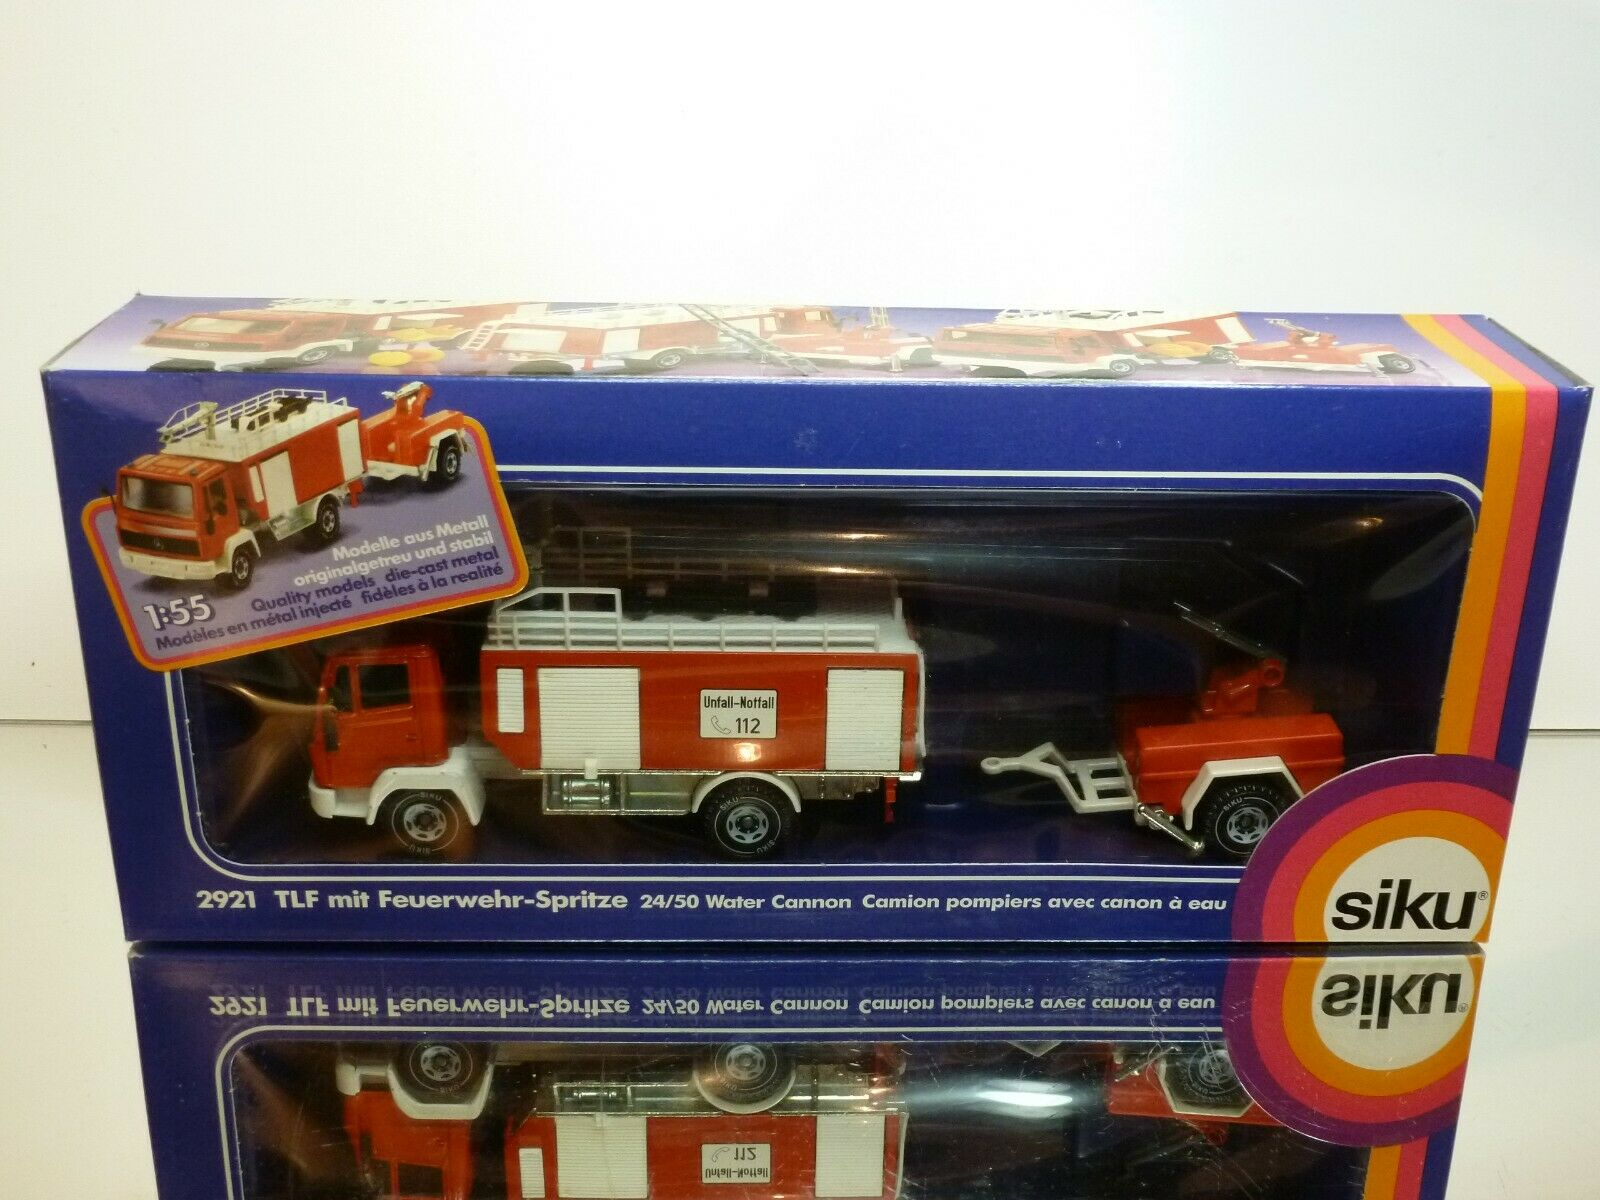 SIKU 2921 MERCEDES BENZ + WATER CANNON - FIRE ENGINE rouge 1 55 - VERY GOOD IN BOX